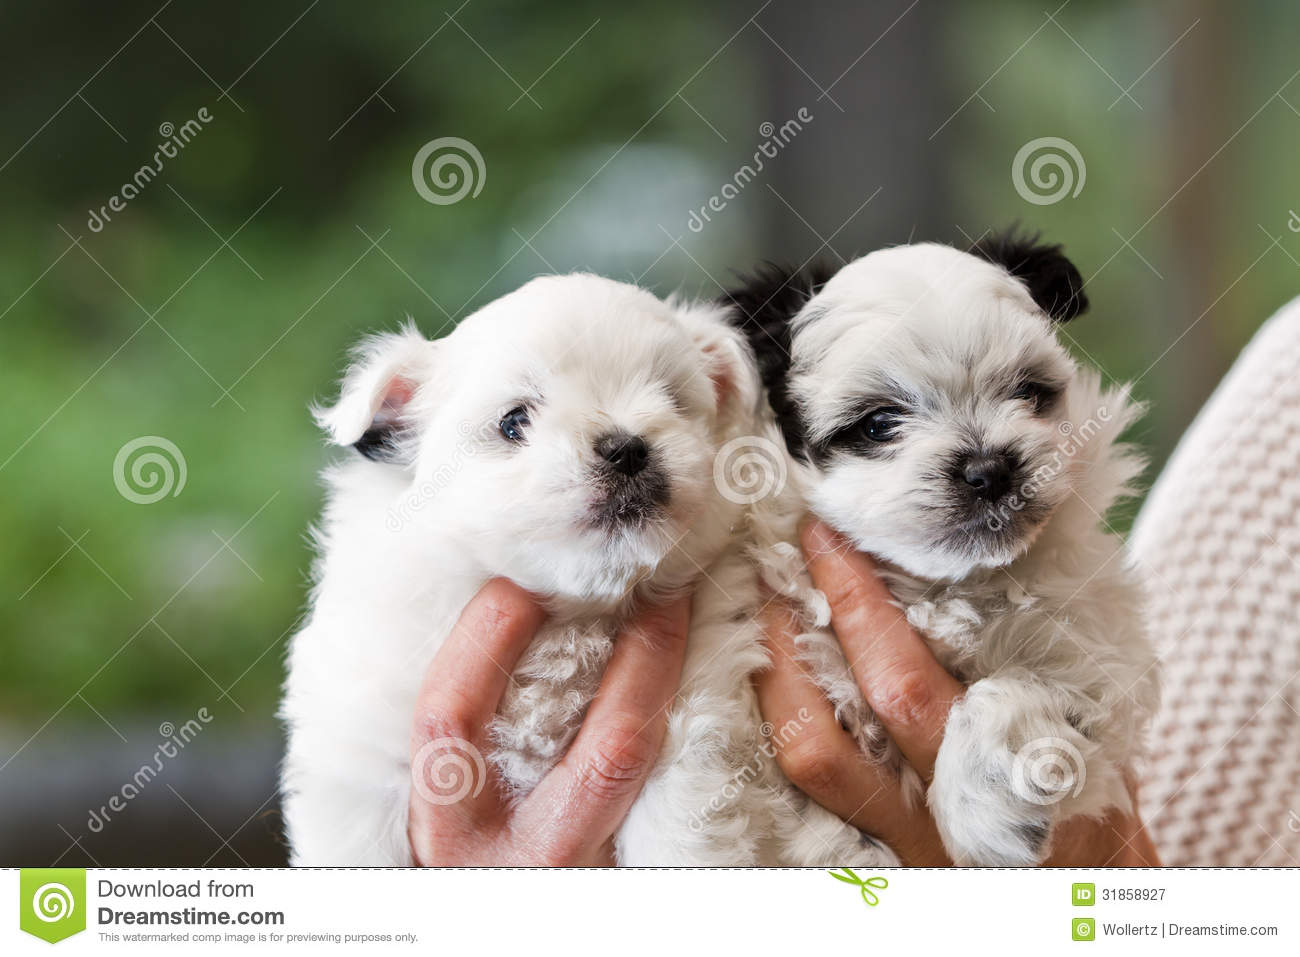 Holding Puppies Stock Image Image Of Adorable Puppies 31858927